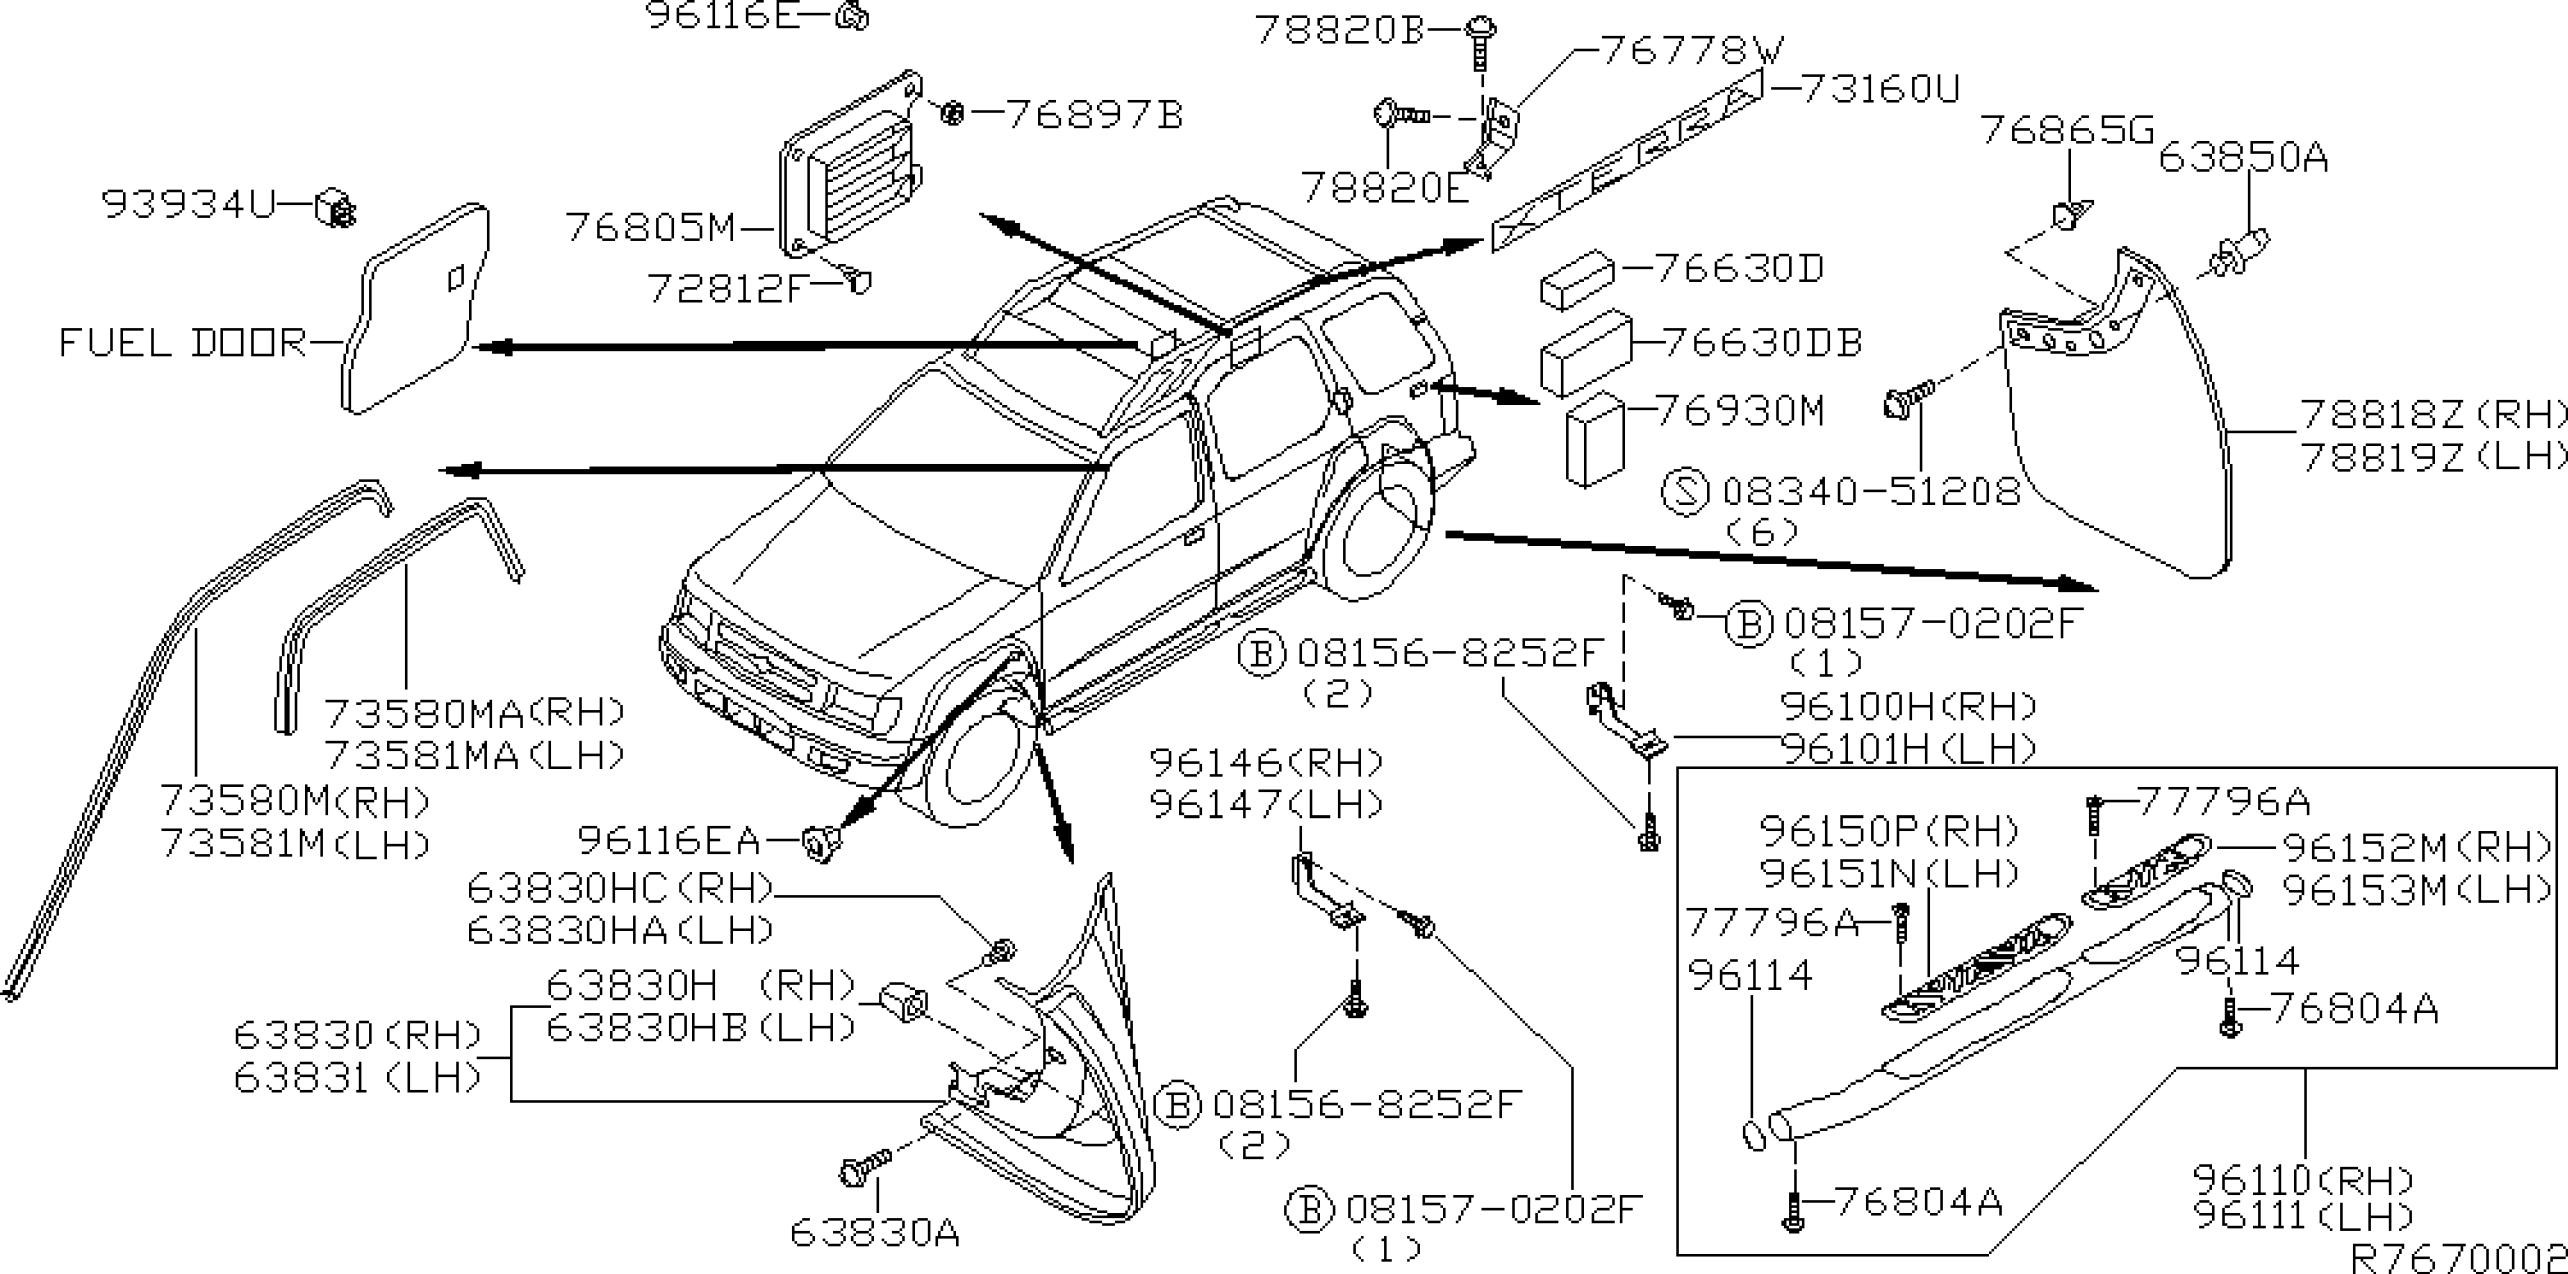 2001 nissan xterra engine diagram wiring diagram panasonic